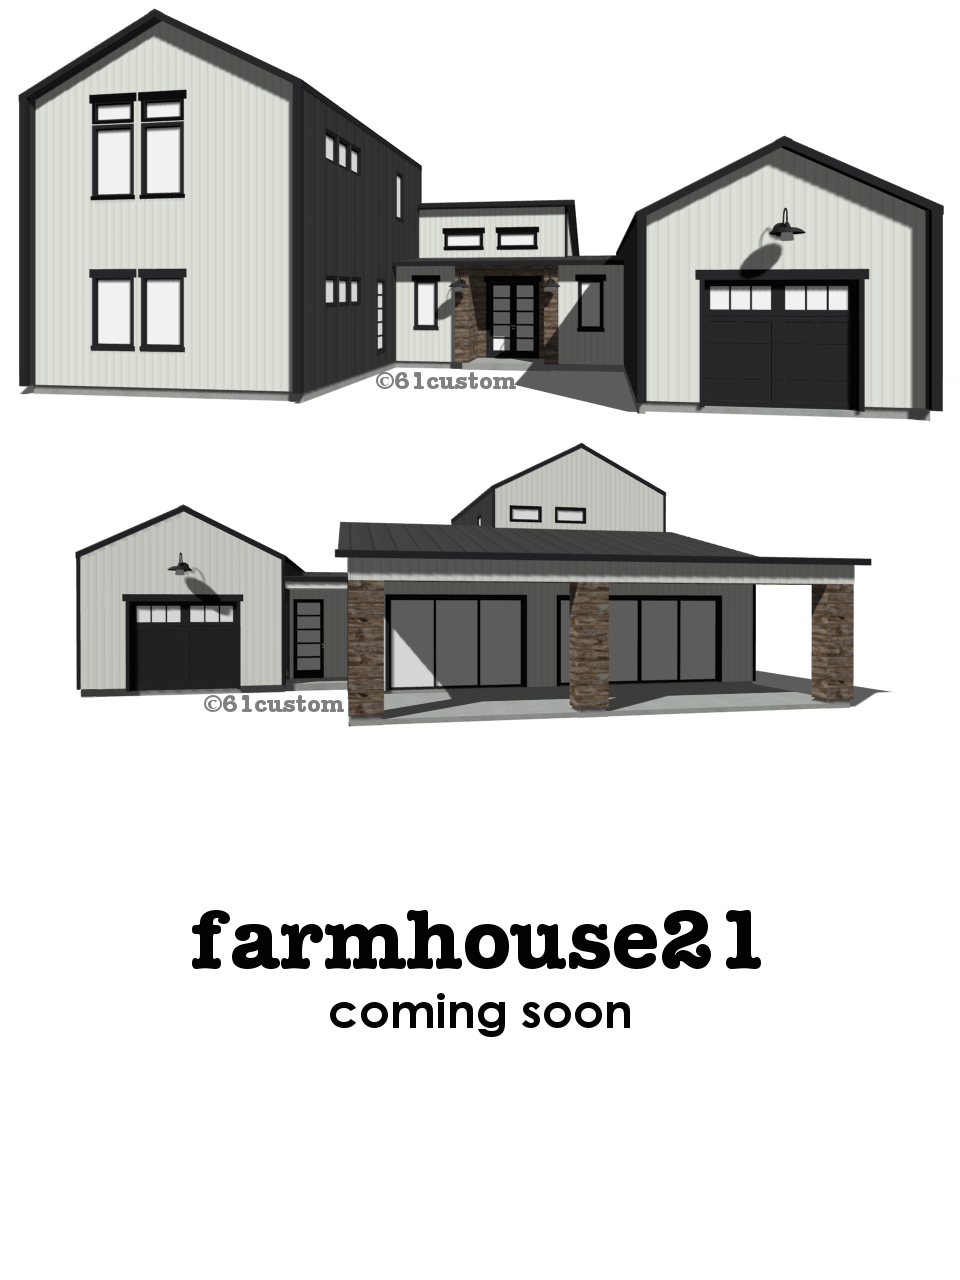 Farmhouse21 modern house plan 61custom contemporary for Modern farmhouse floor plans